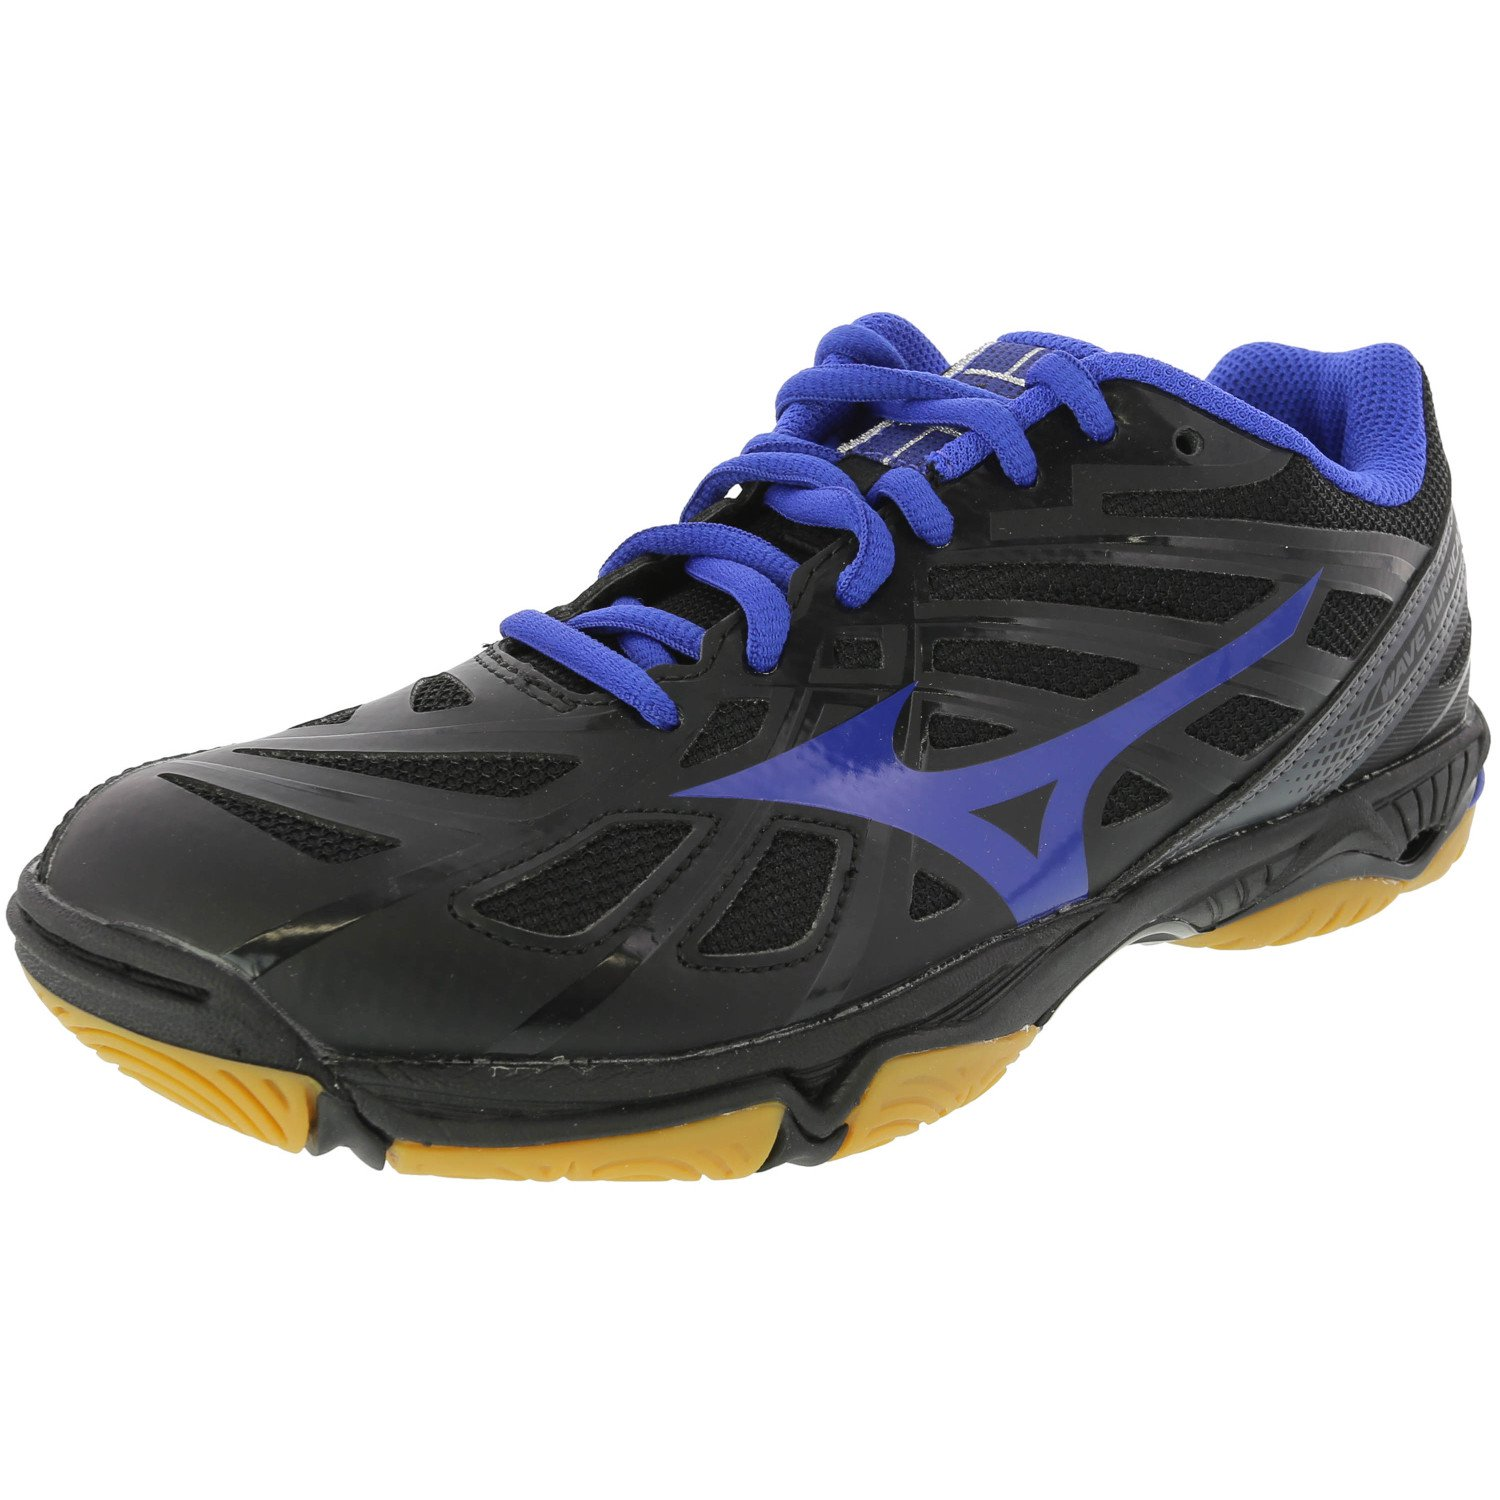 mizuno womens volleyball shoes size 8 x 3 foot with measurement